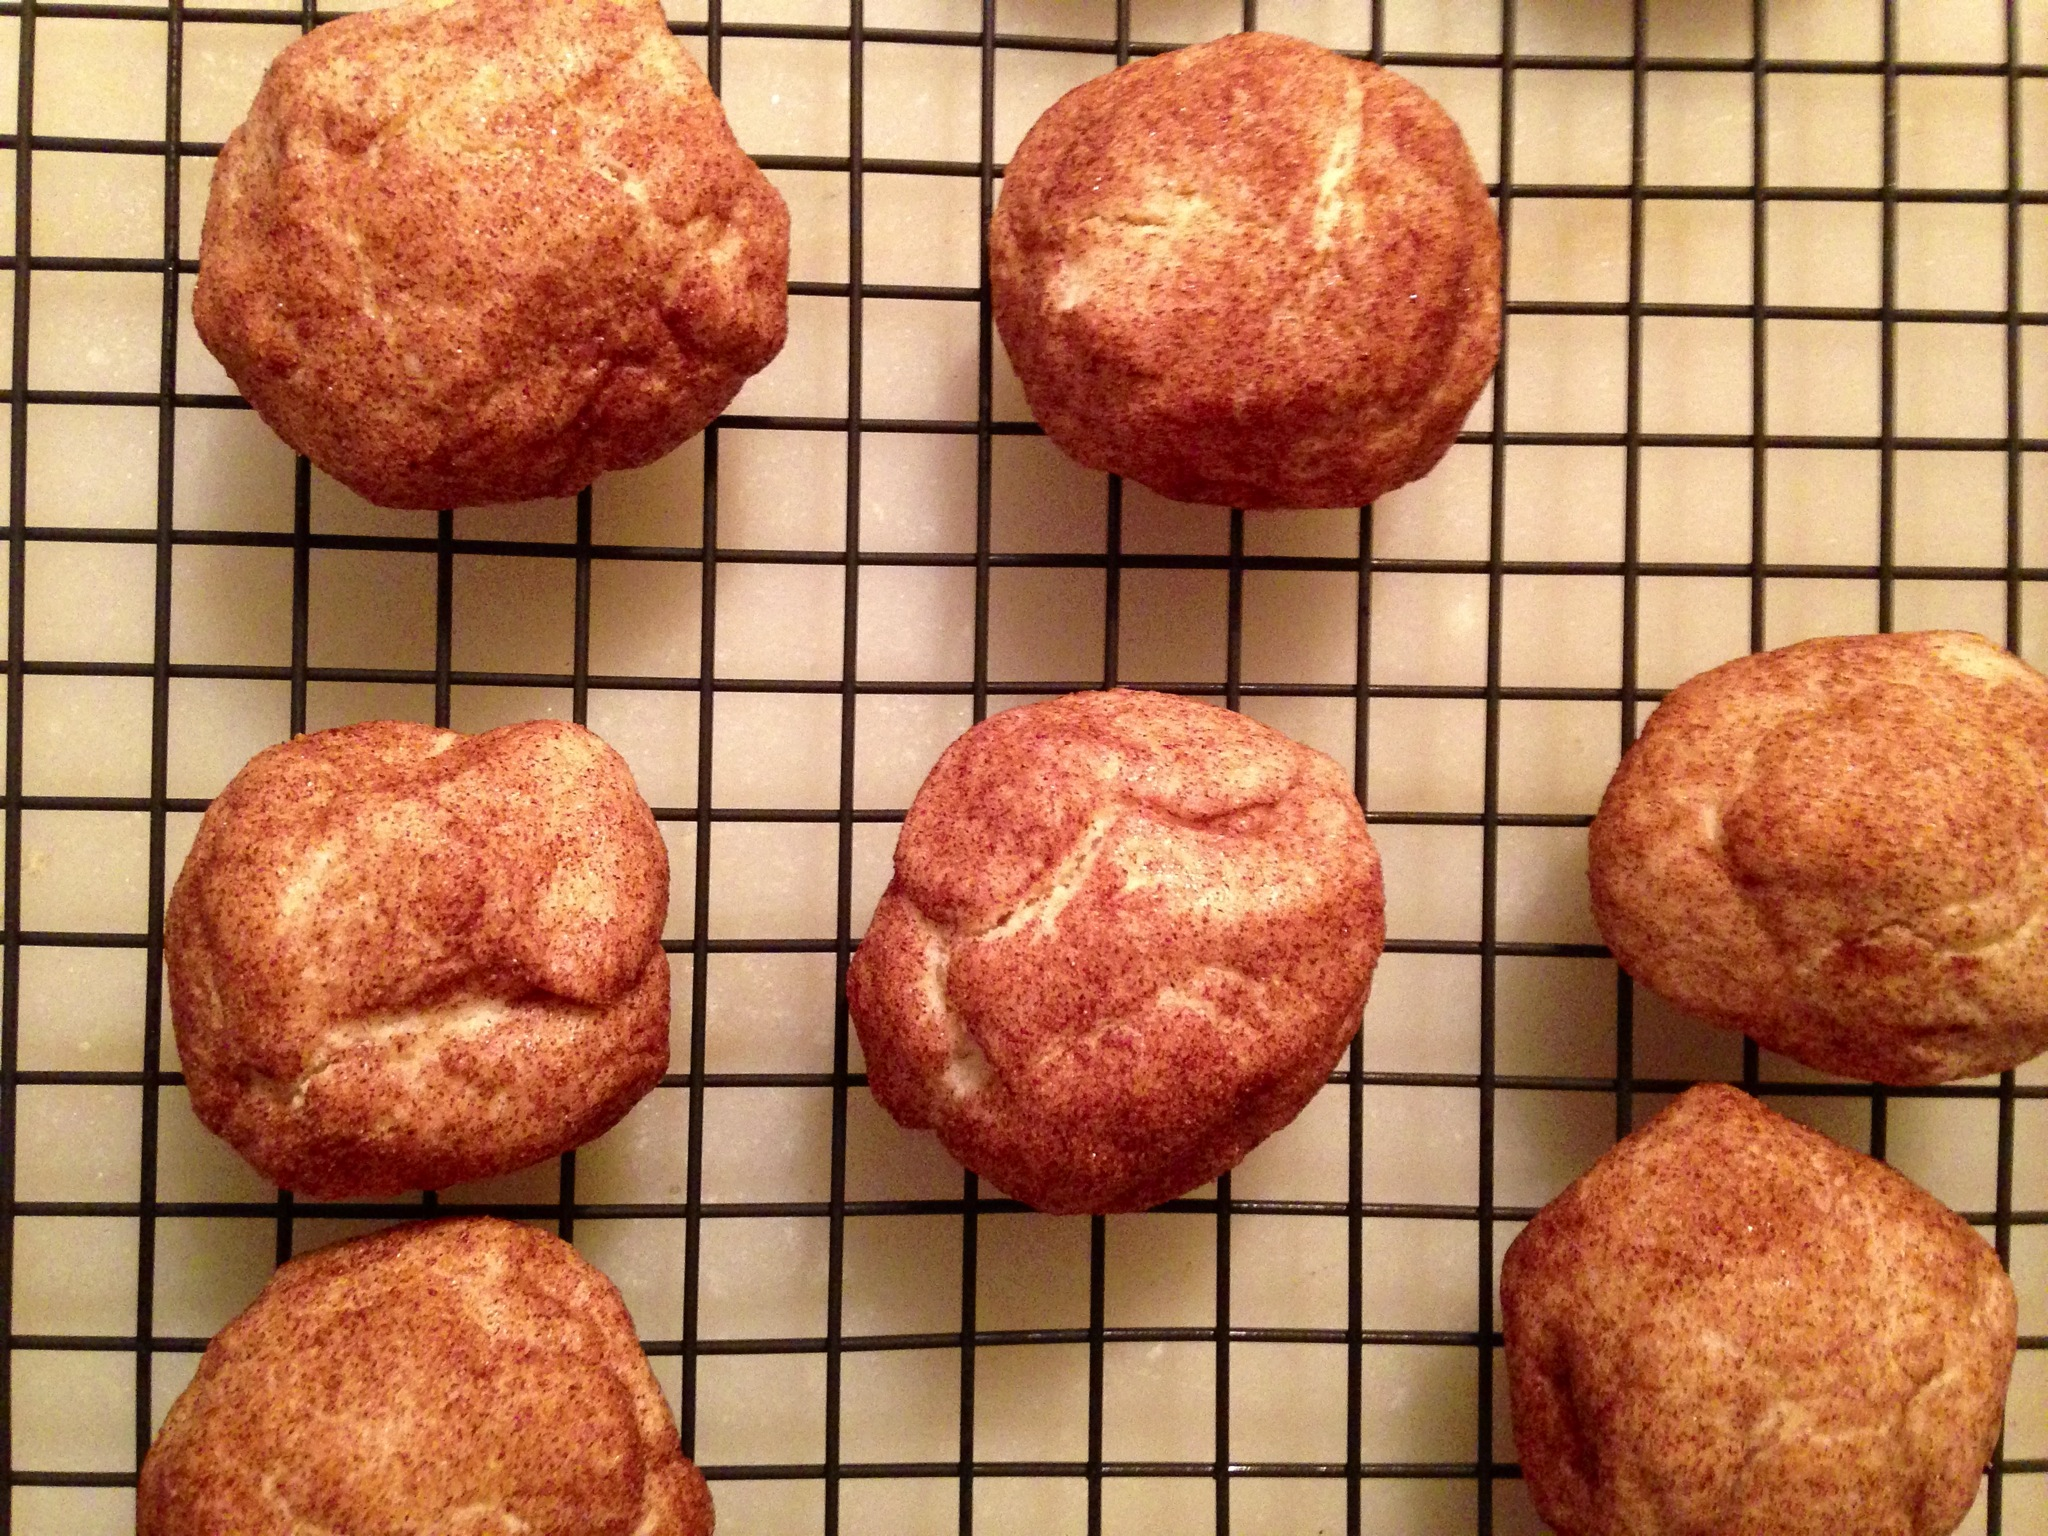 They are not supposed to be Snickerballs. They are supposed to be SnickerDOODLES!